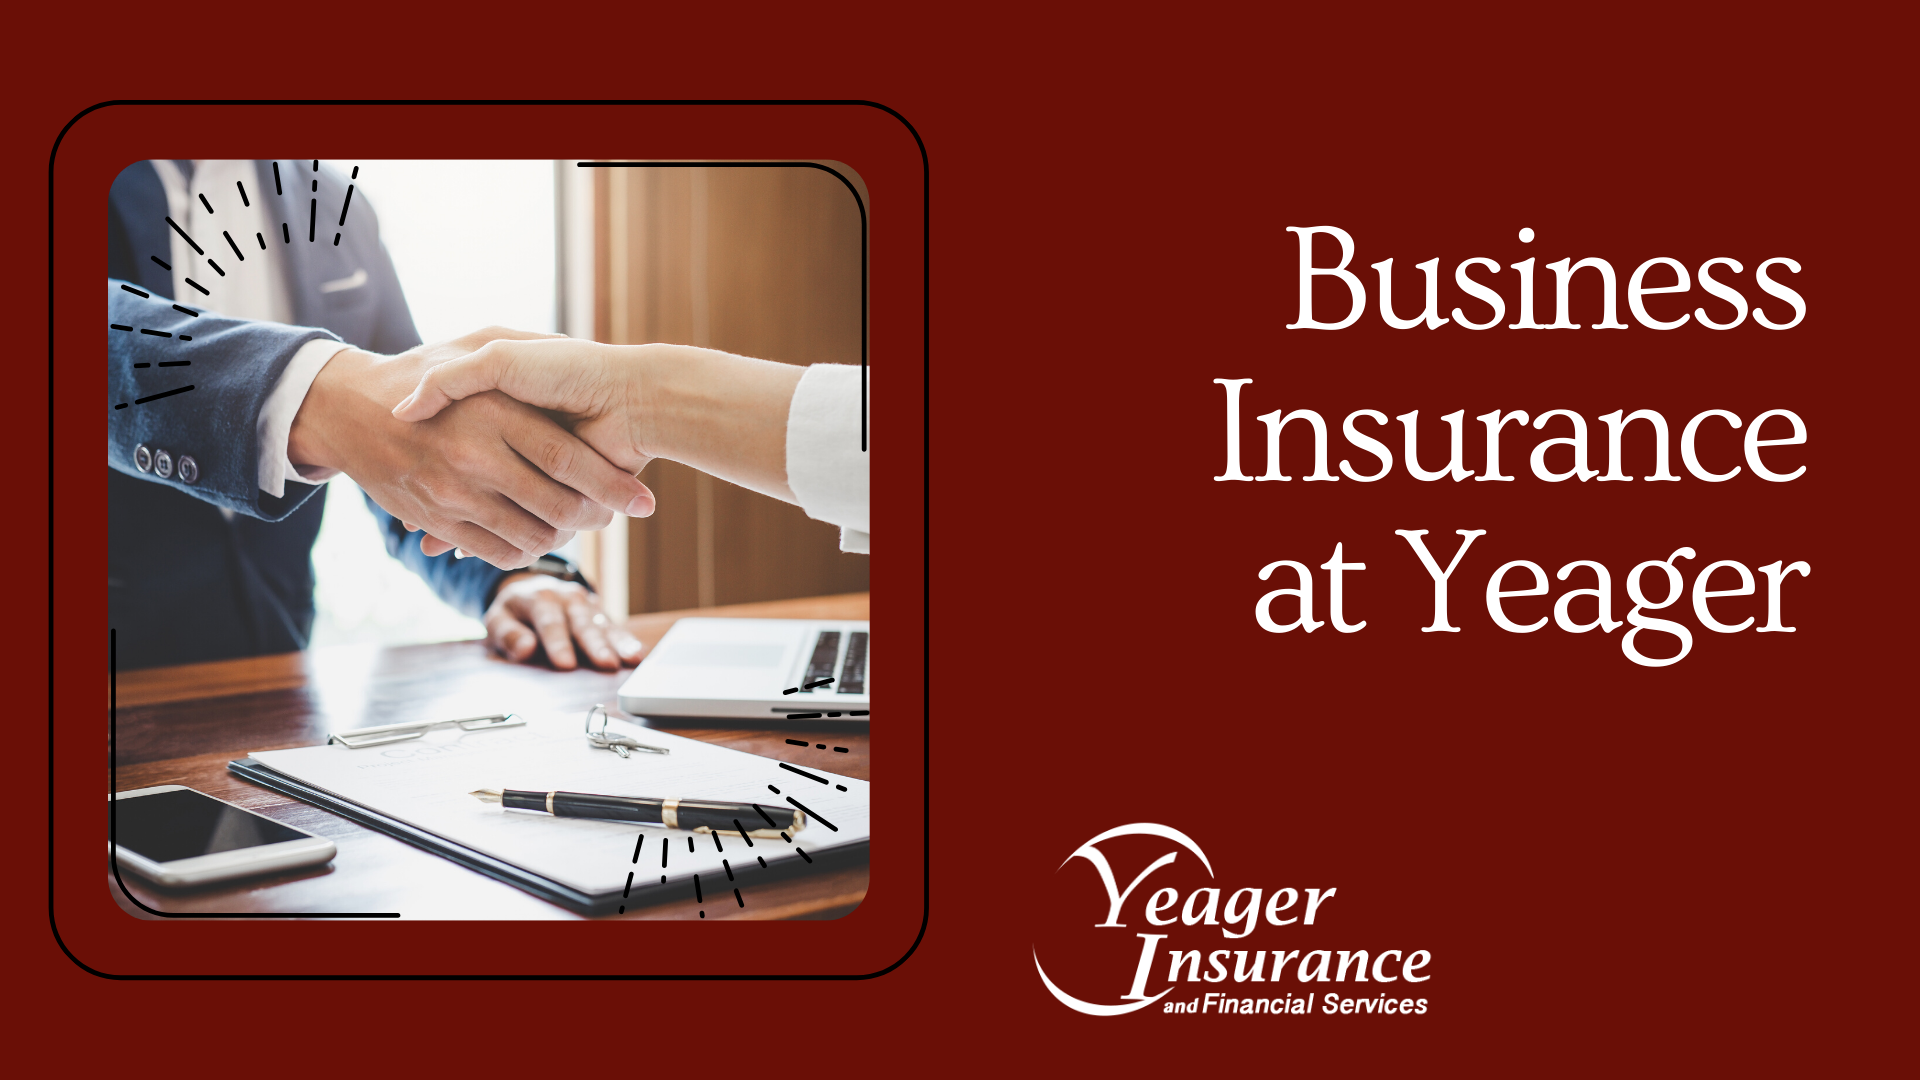 Business Insurance at Yeager - Commercial Insurance WV